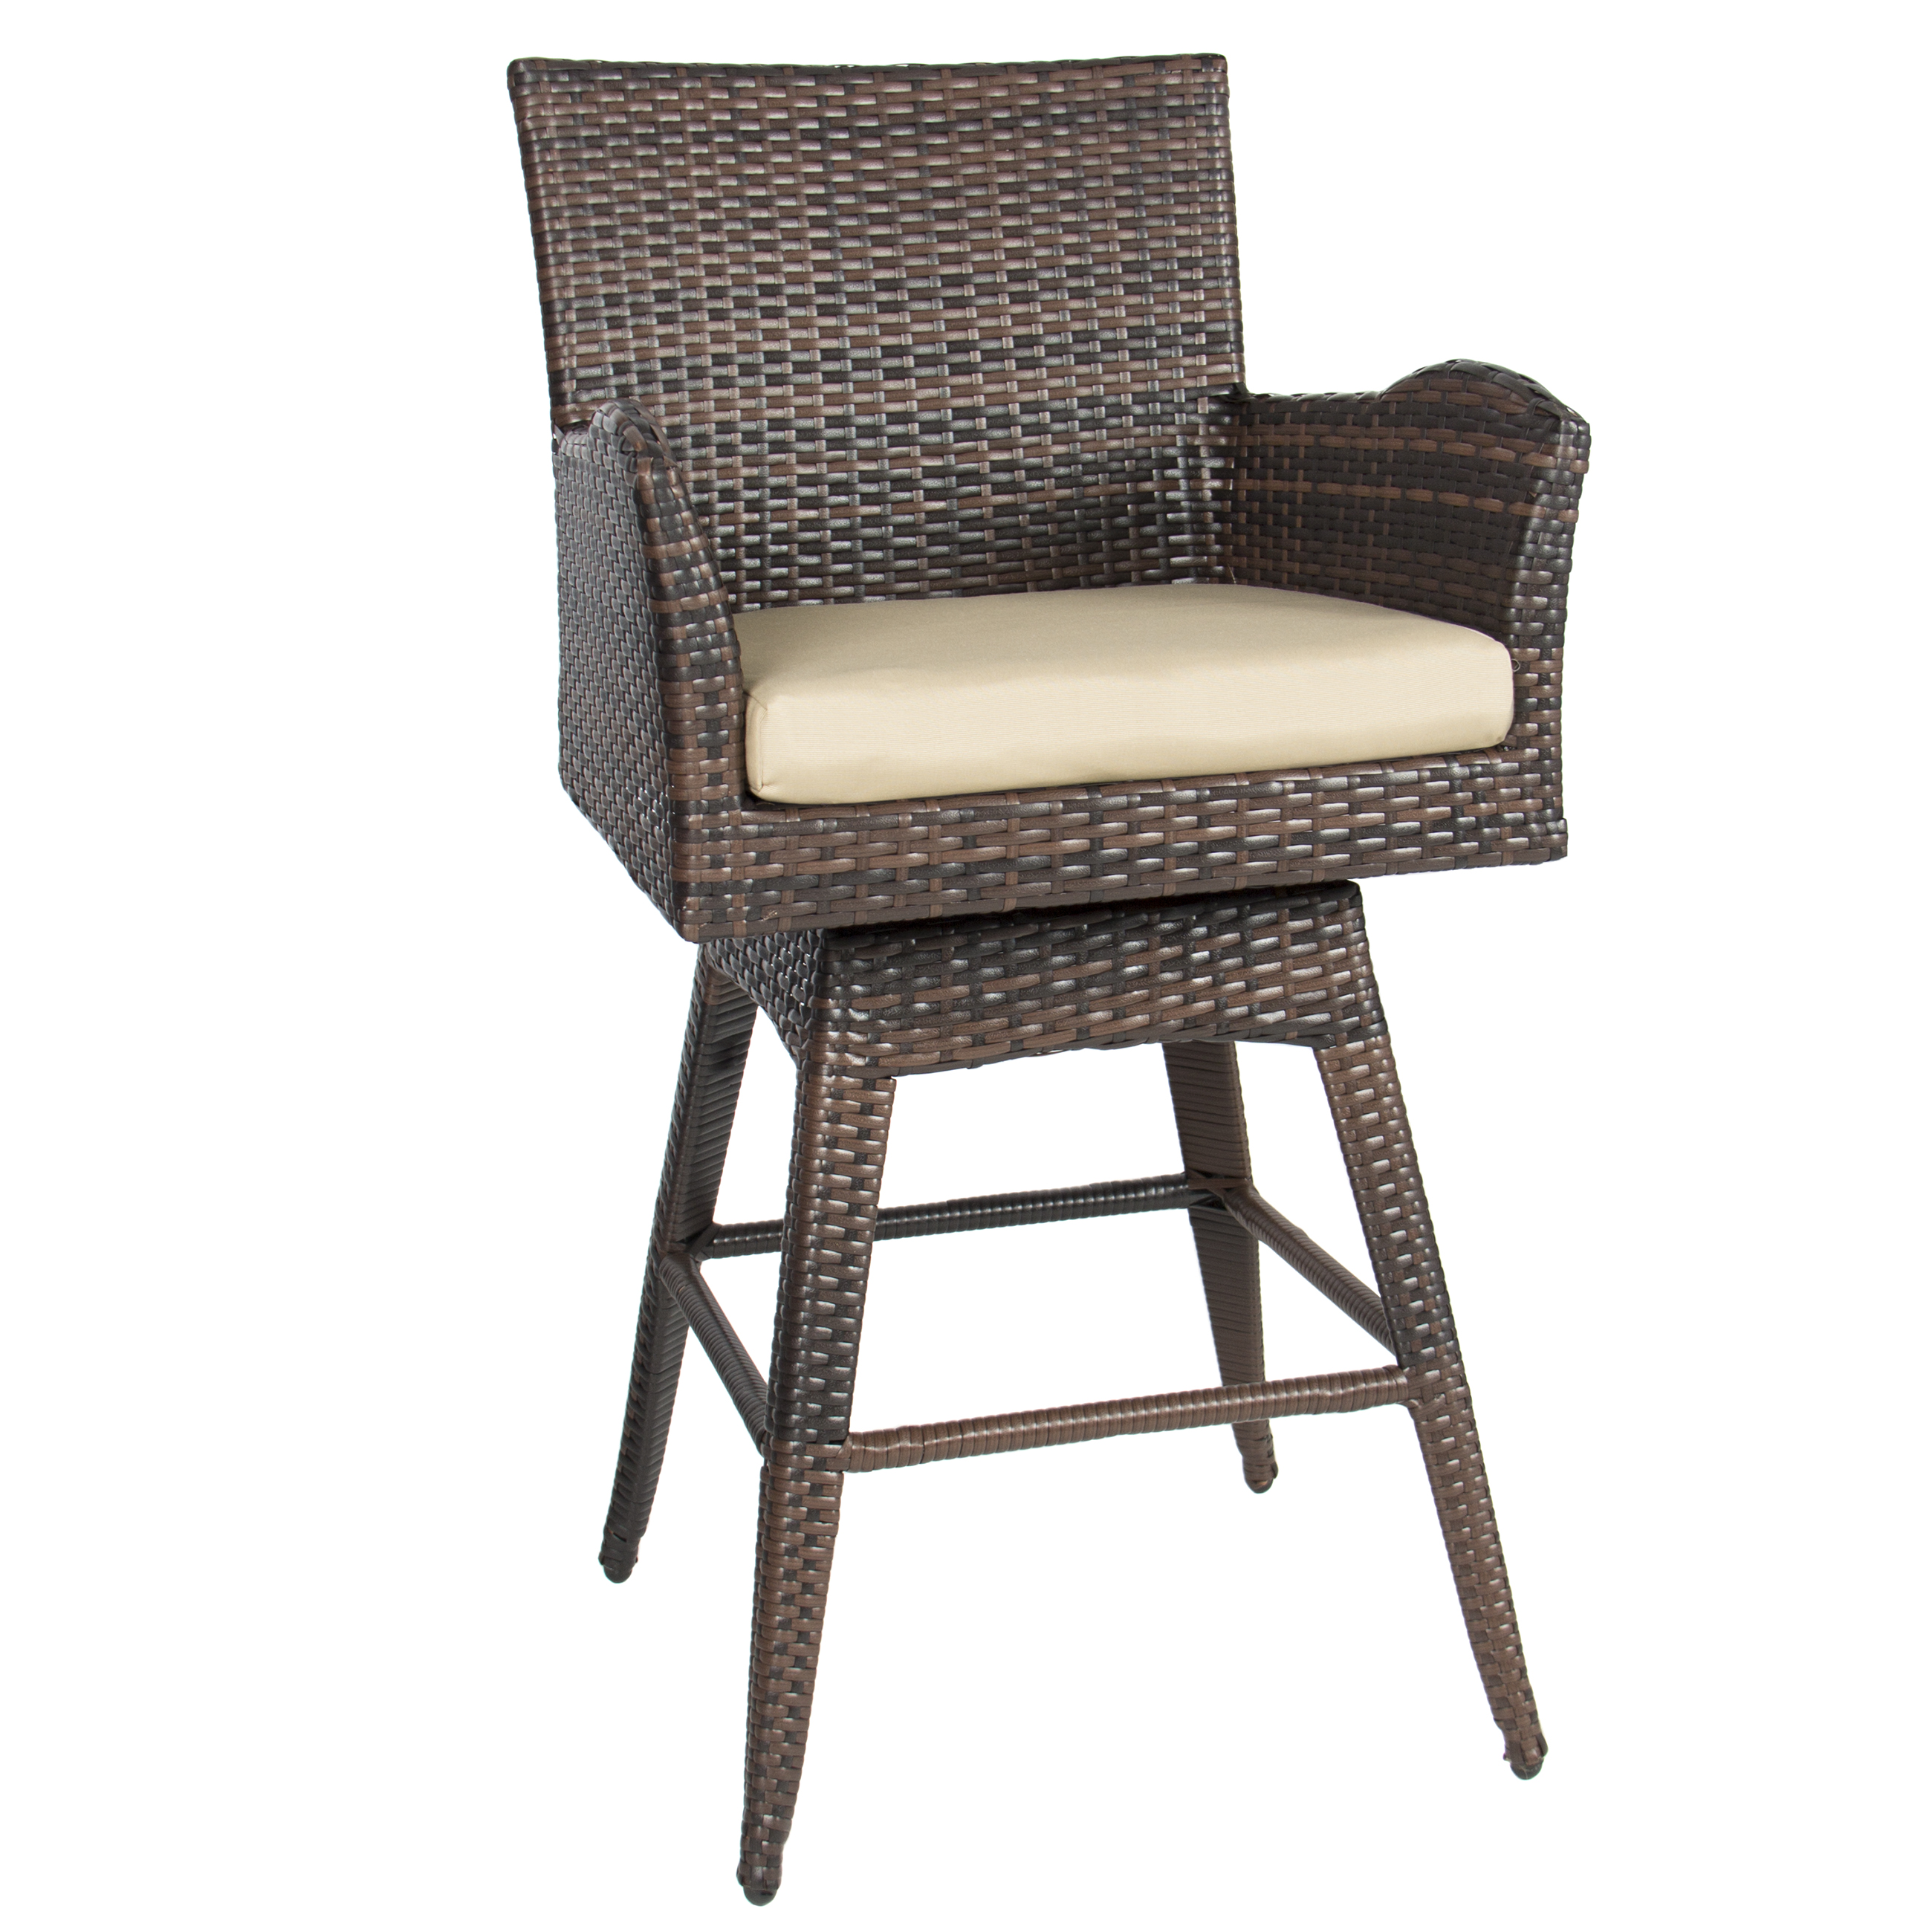 Outdoor Patio Furniture All Weather Brown PE Wicker Swivel Bar Stool w Cushion